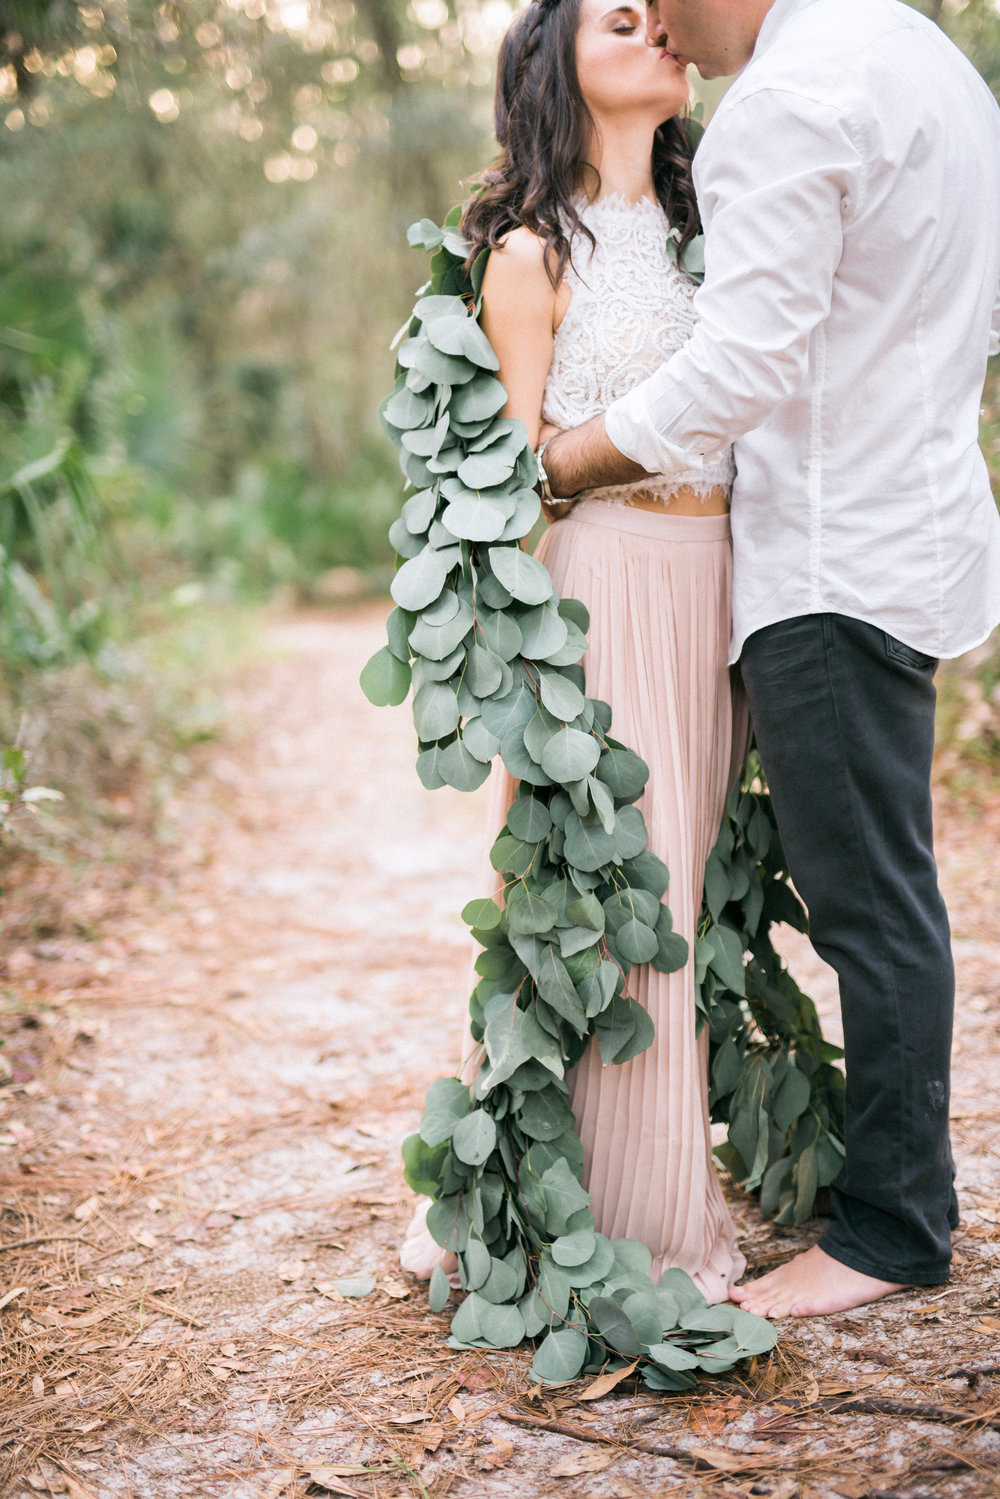 Eucalyptus+garland+used+as+greenery%2Ffloral+shrug+for+styled+engagement+shoot+at+Wekiwa+Springs+State+Park.jpg